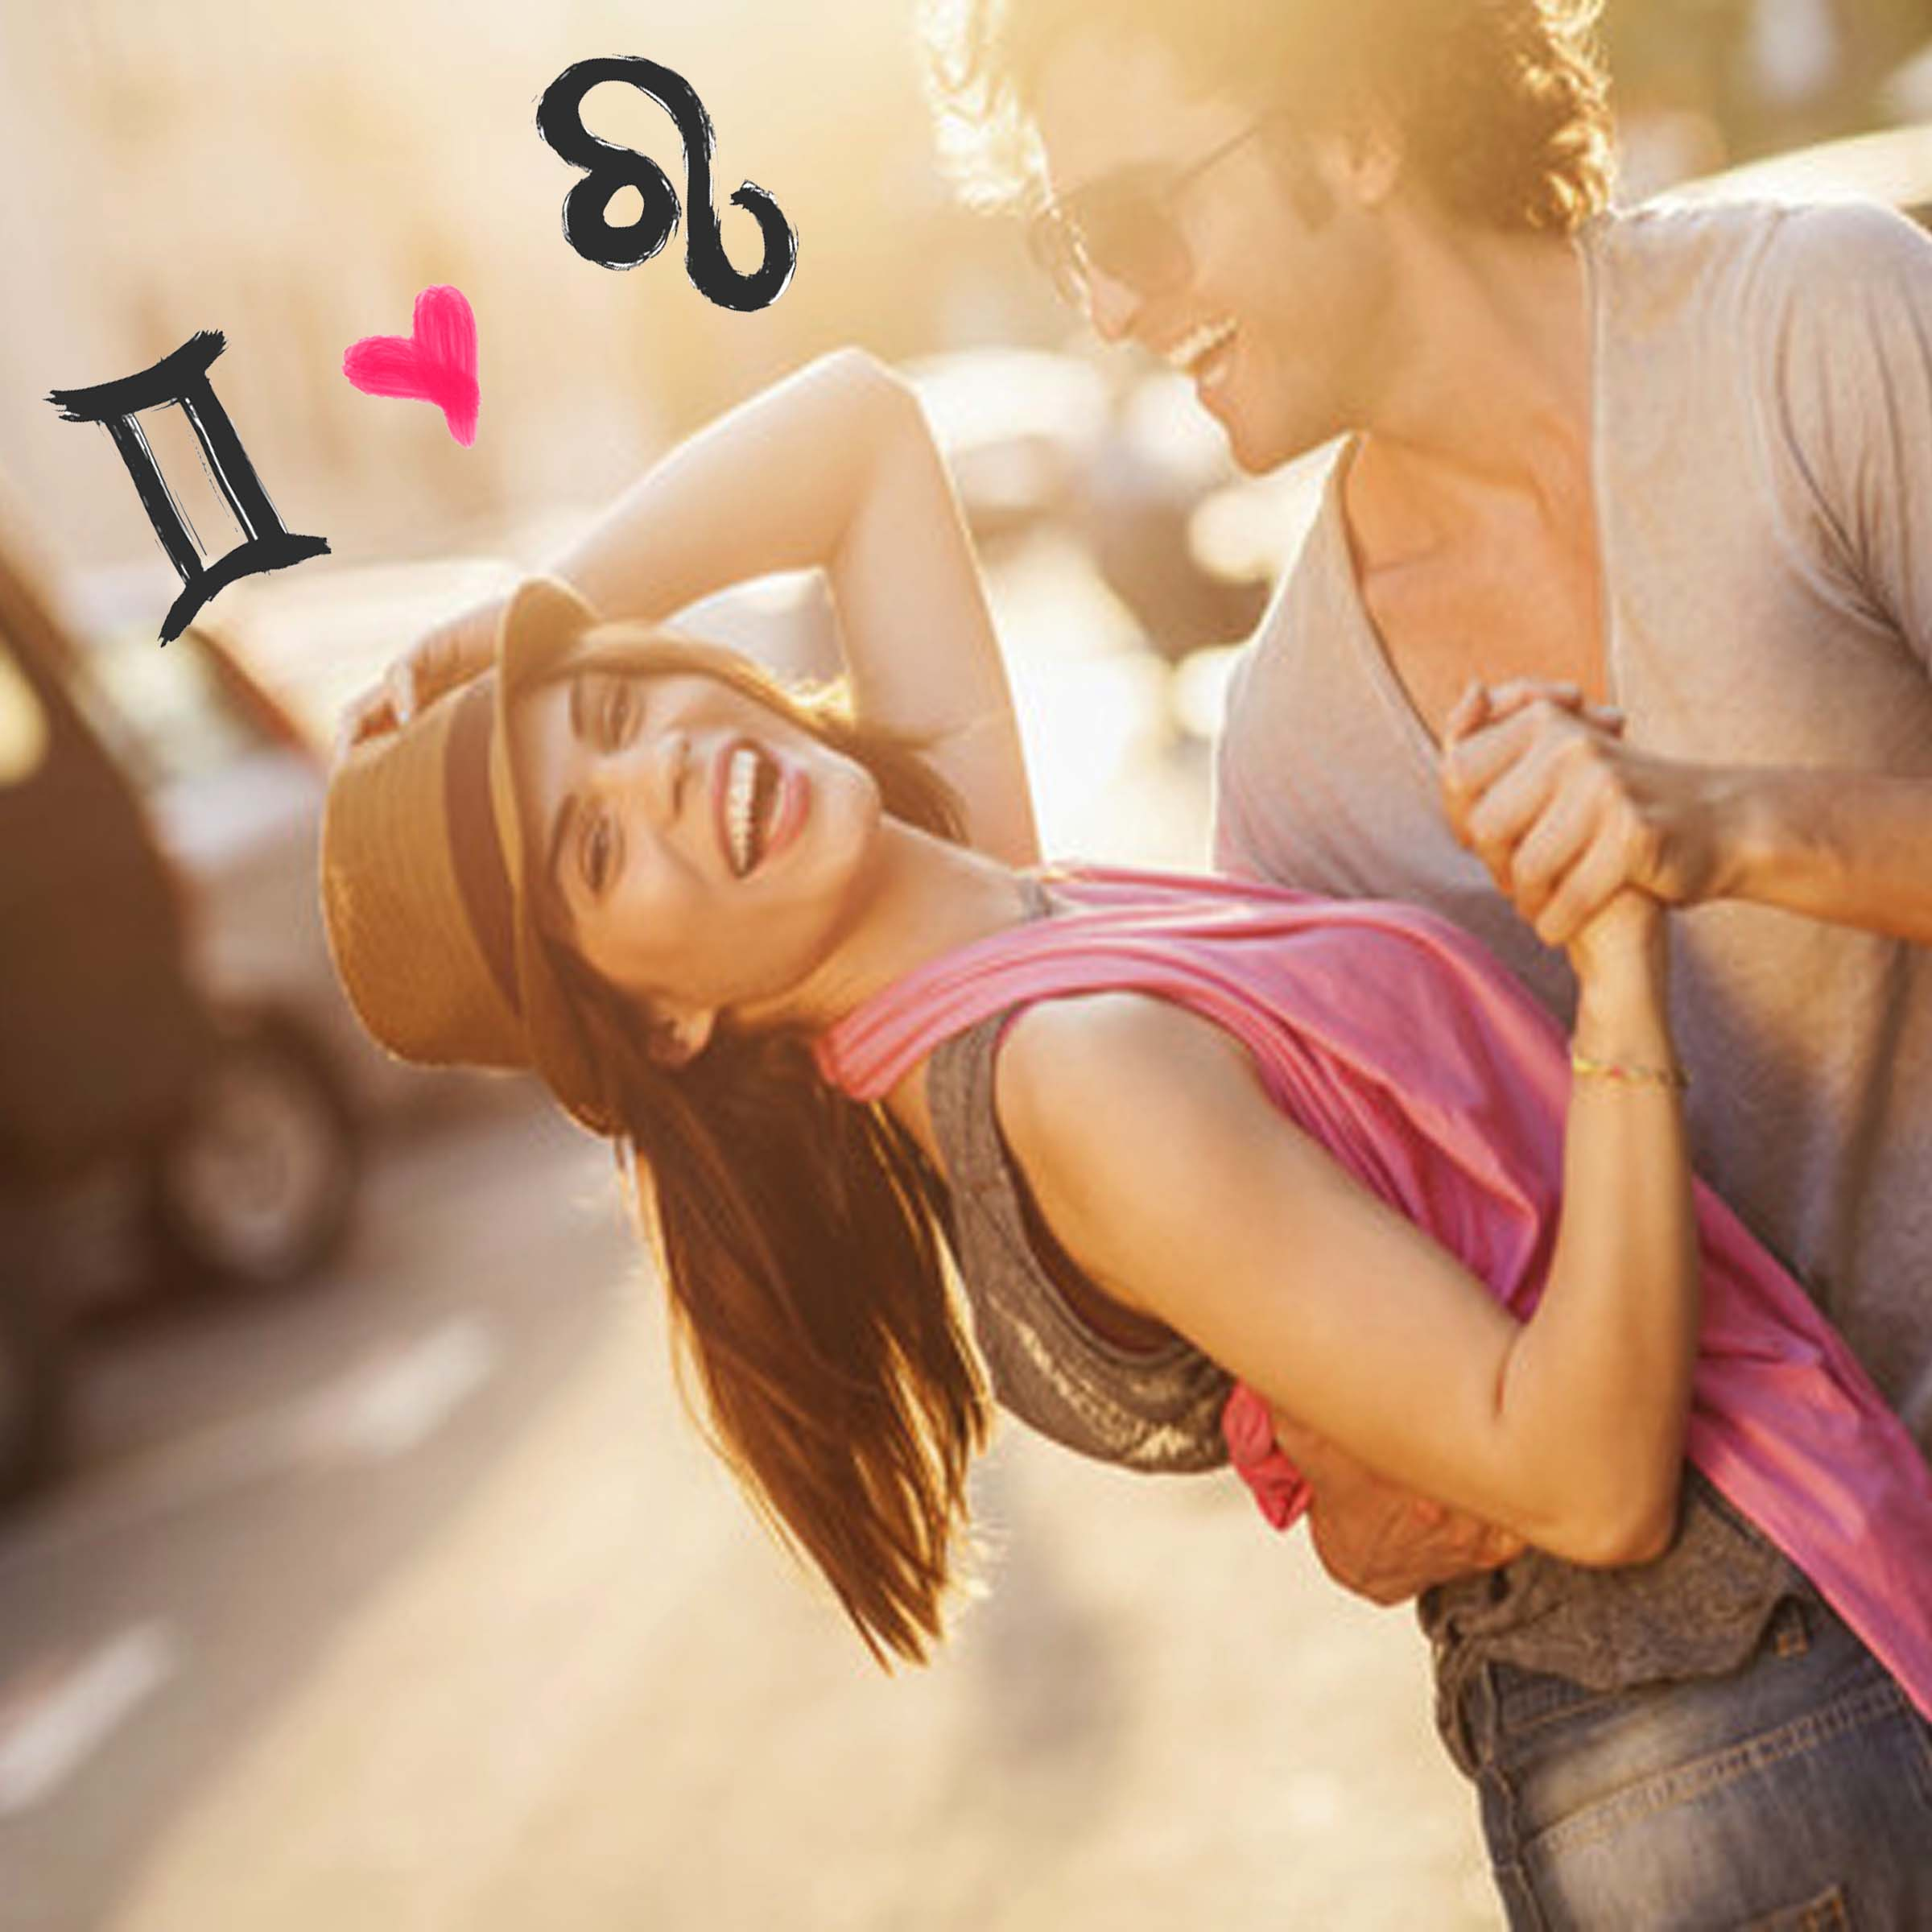 Compatibility between Gemini and Leo